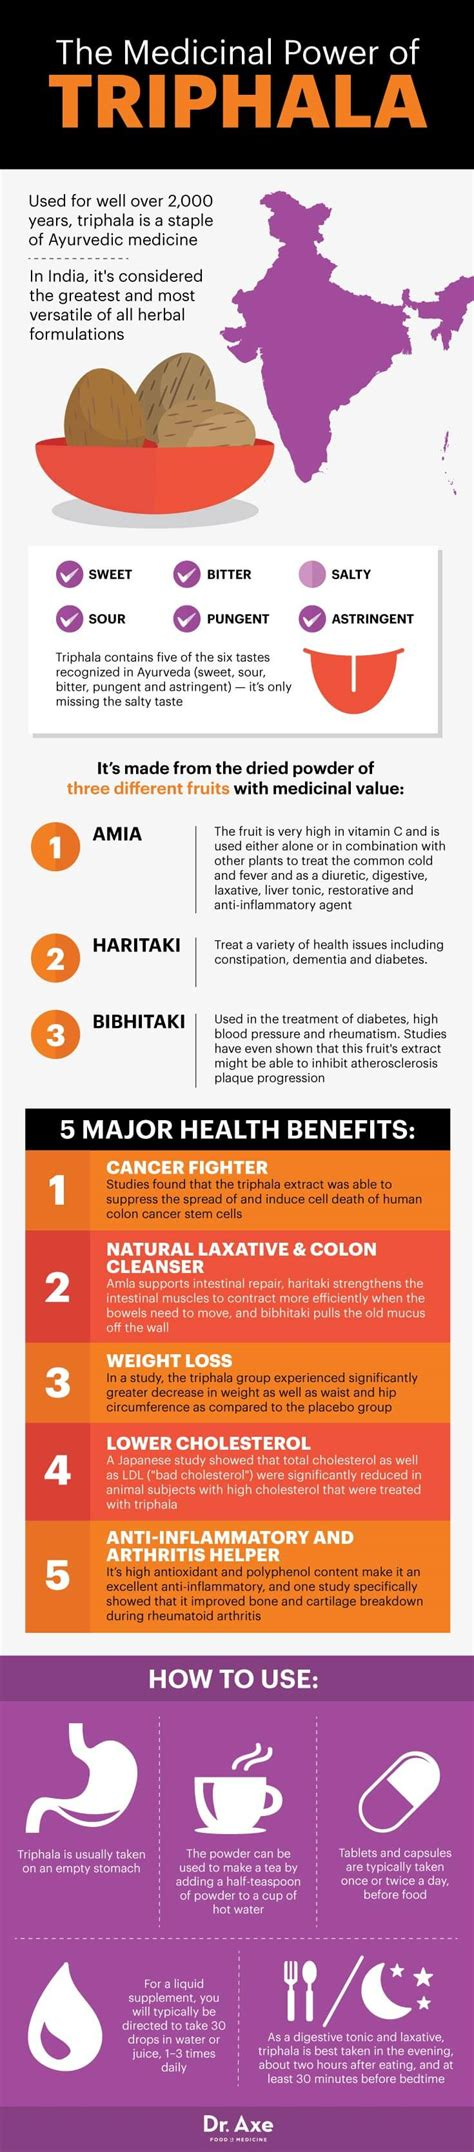 detox liver by himalaya picture 2